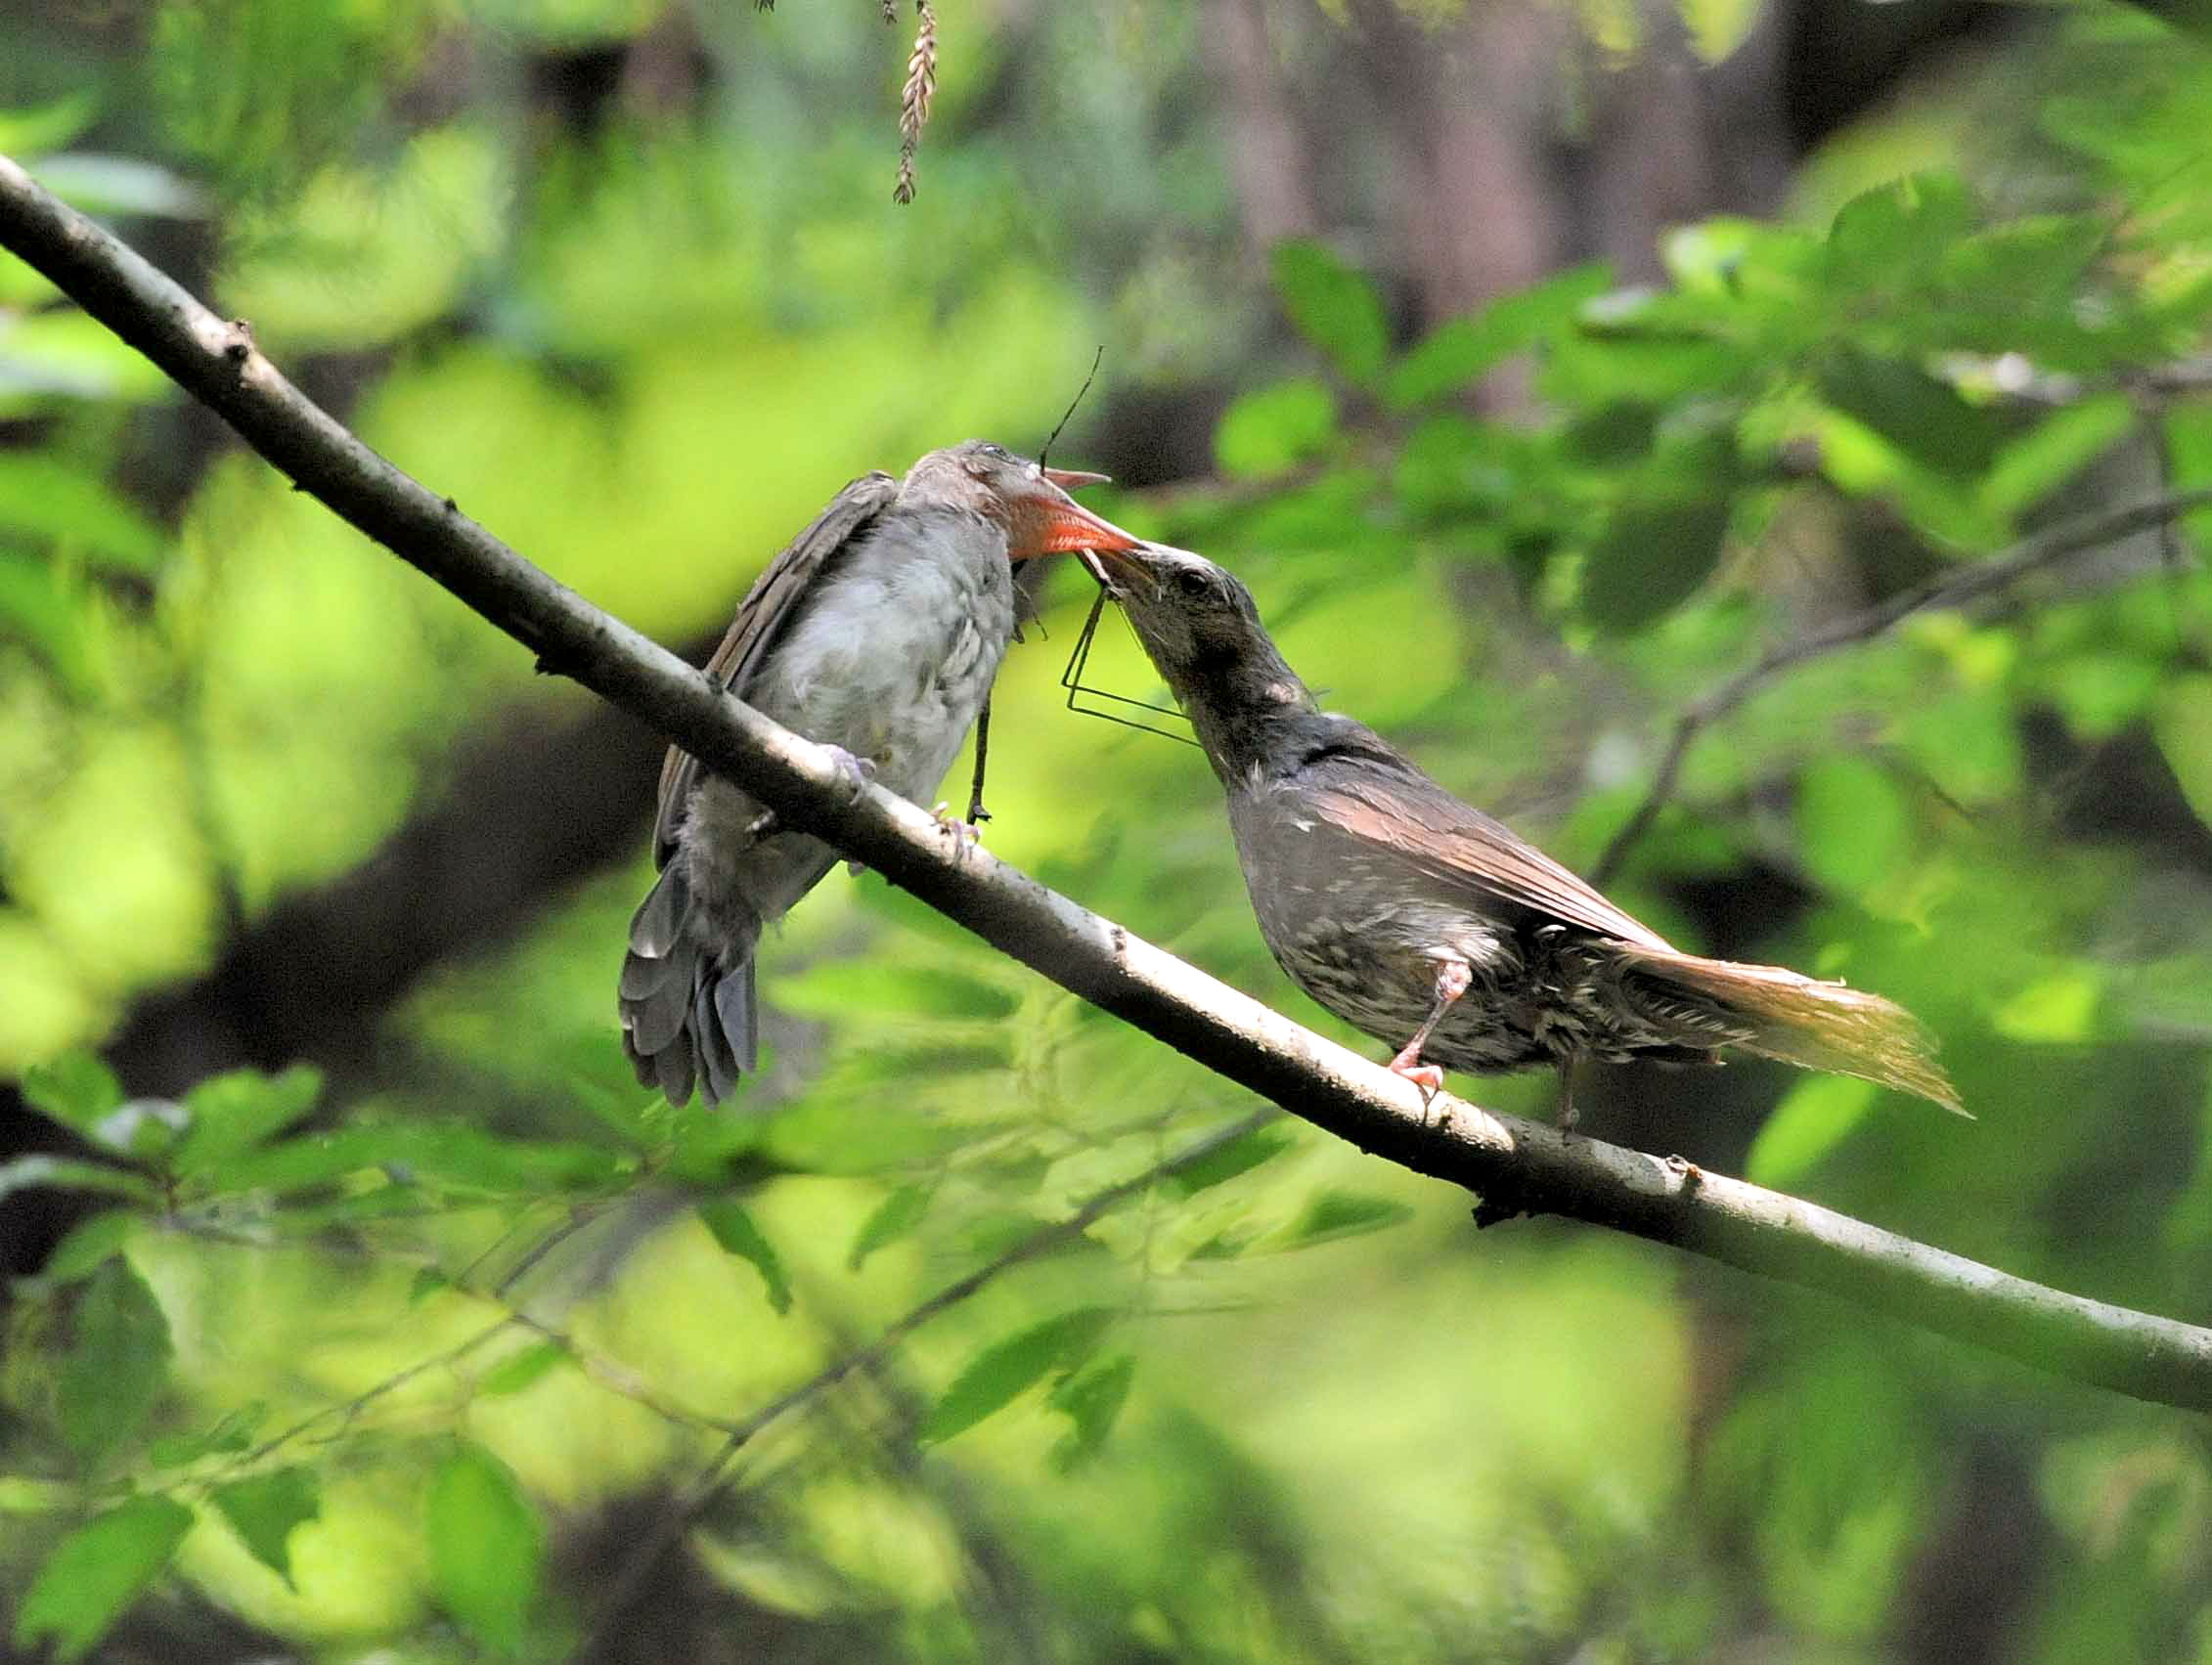 Brown-eared Bulbul feeding stick insect to its chick. Hakuren Kato